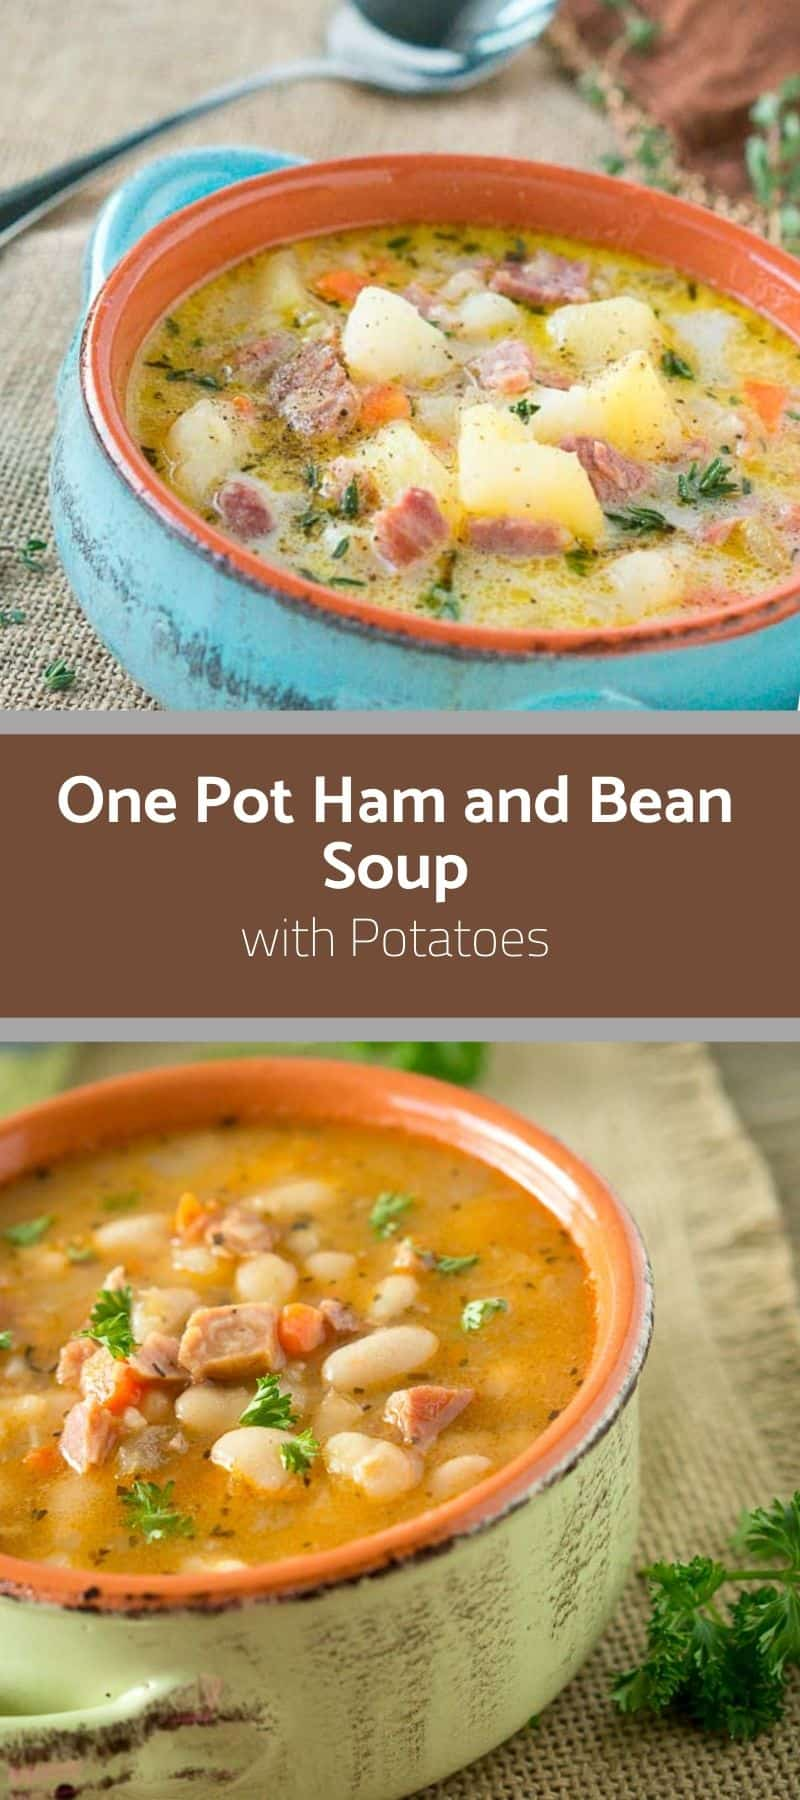 One Pot Ham and Bean Soup with Potatoes 3